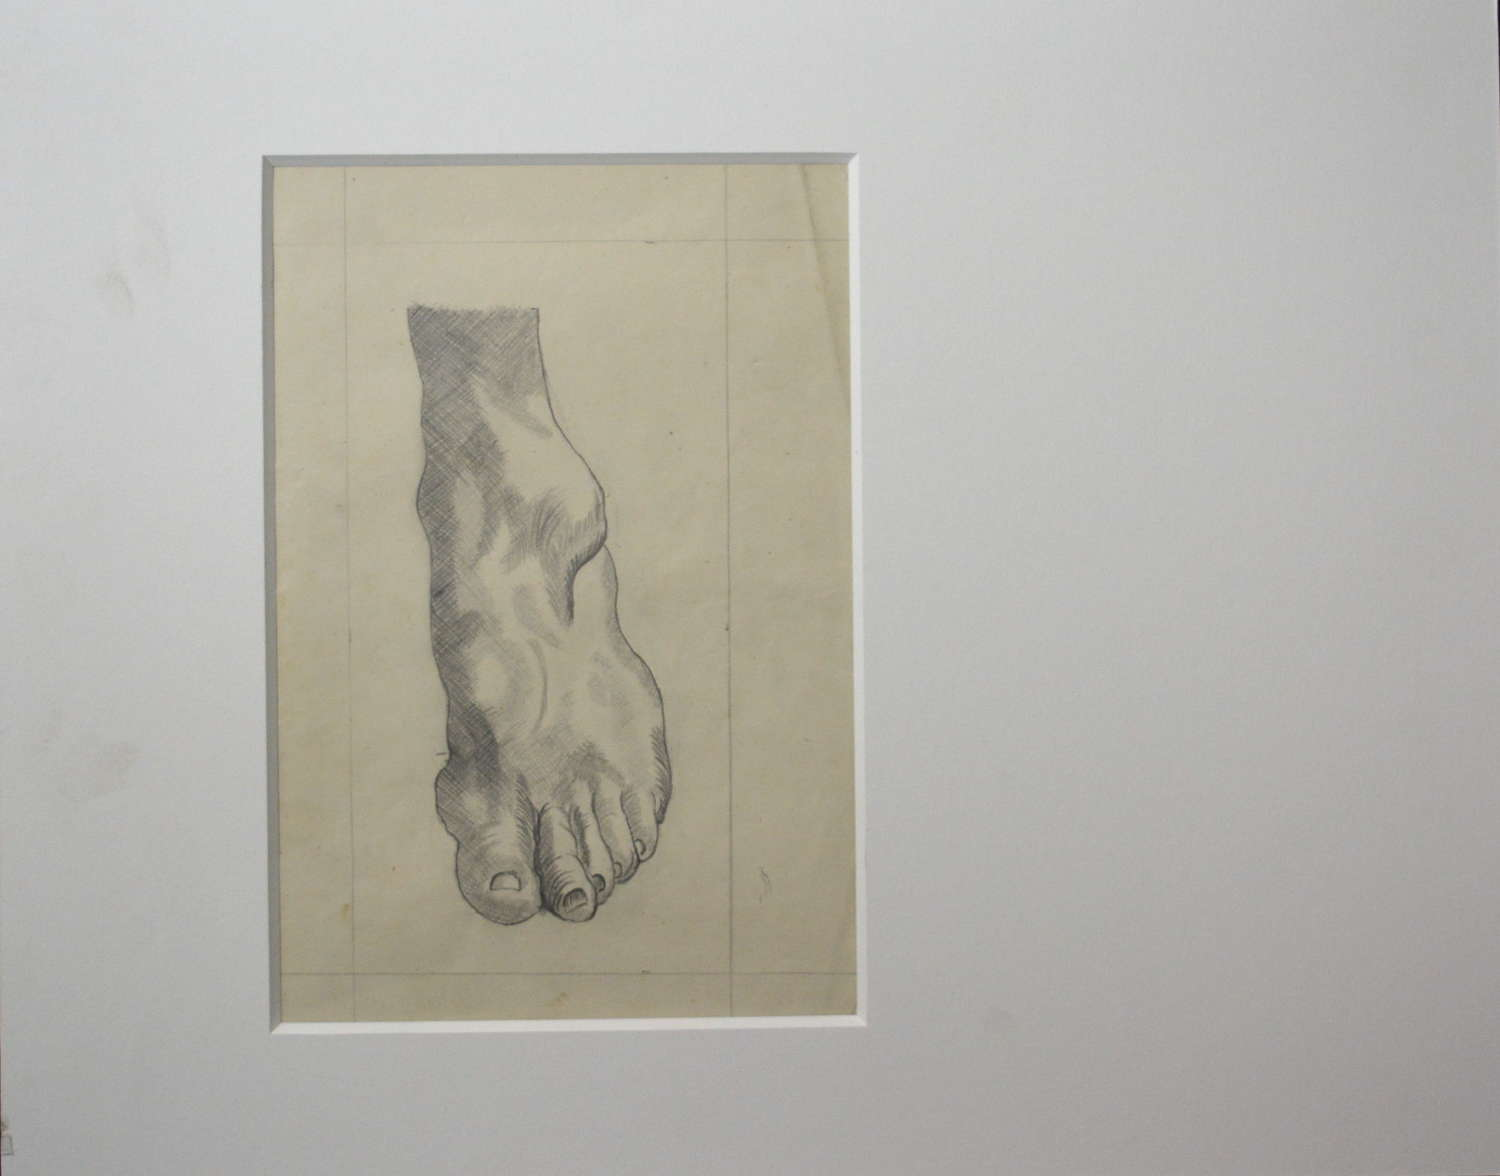 LATE 19TH CENTURY STUDY OF A FOOT